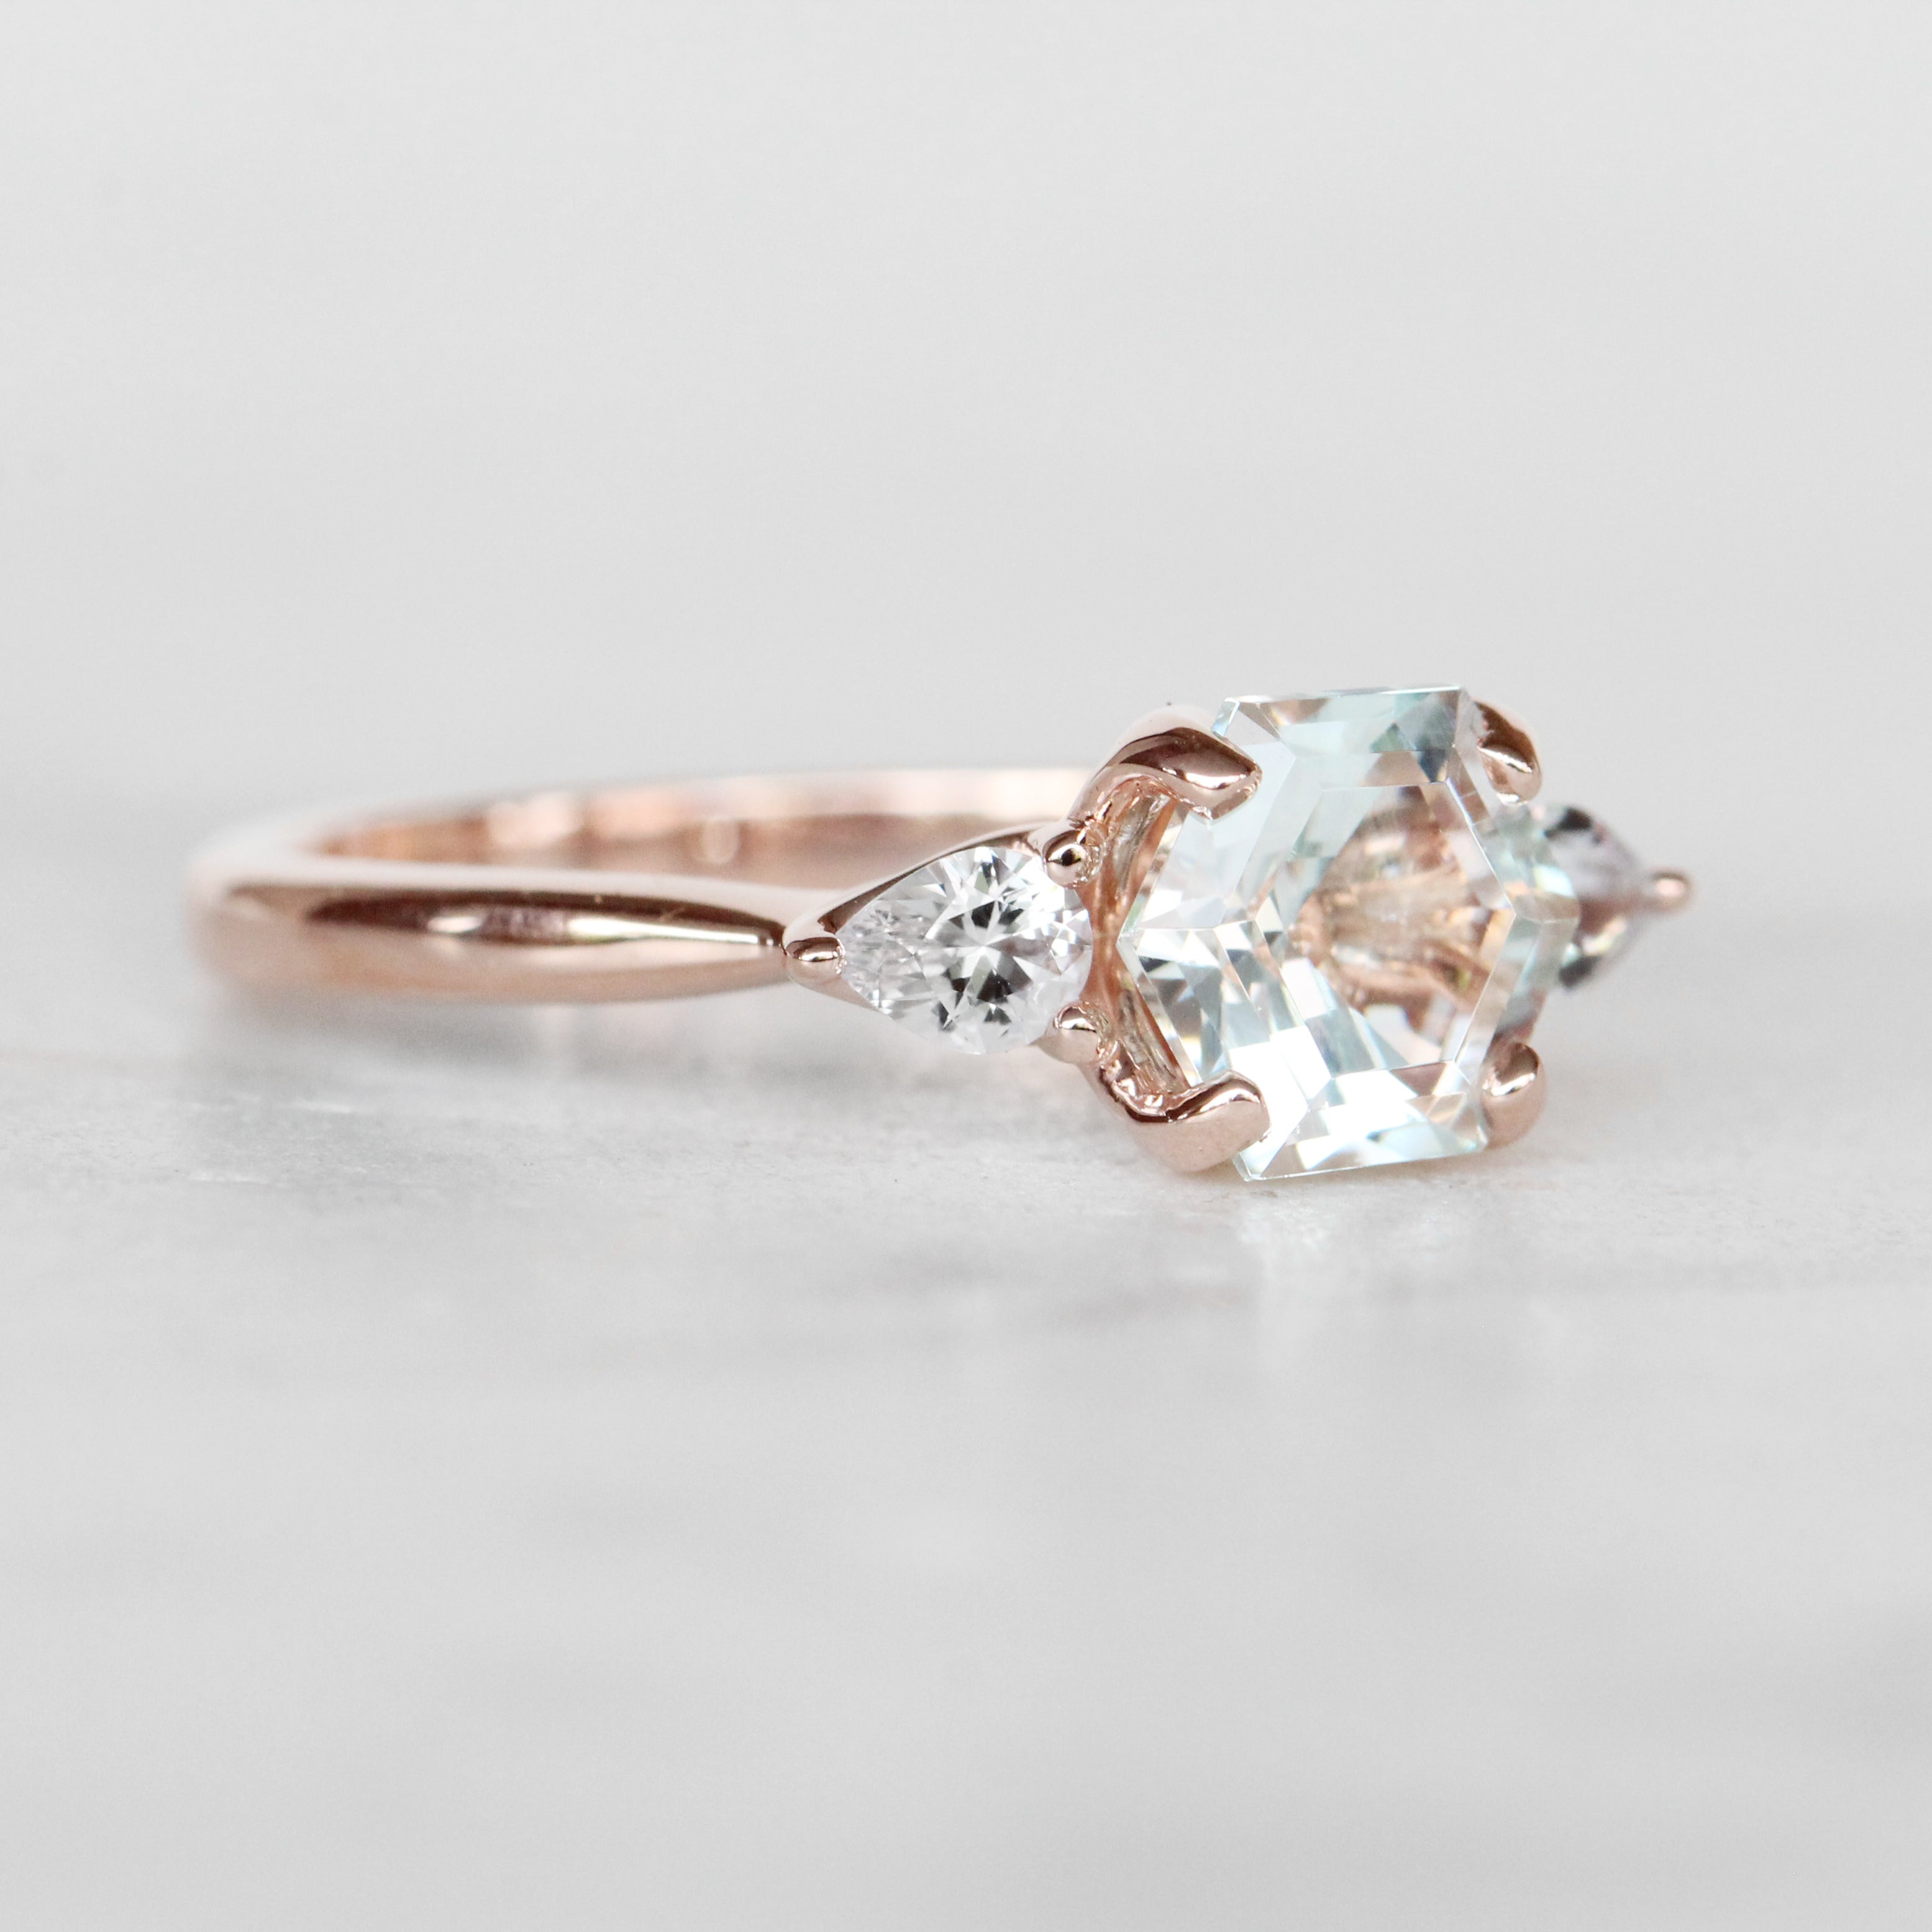 Oleander ring with hexagon Aquamarine and white Sapphire in 10k rose gold - ready to size and ship - Salt & Pepper Celestial Diamond Engagement Rings and Wedding Bands  by Midwinter Co.